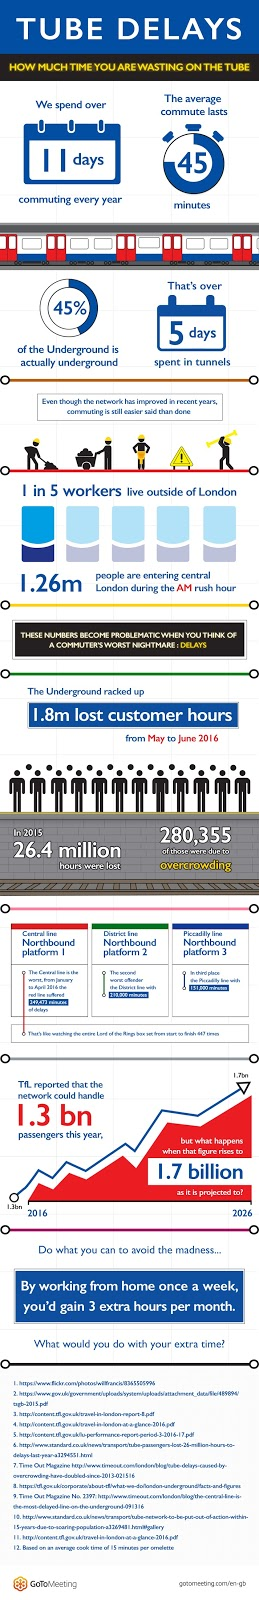 Tube Delays infographic, A Mum in London